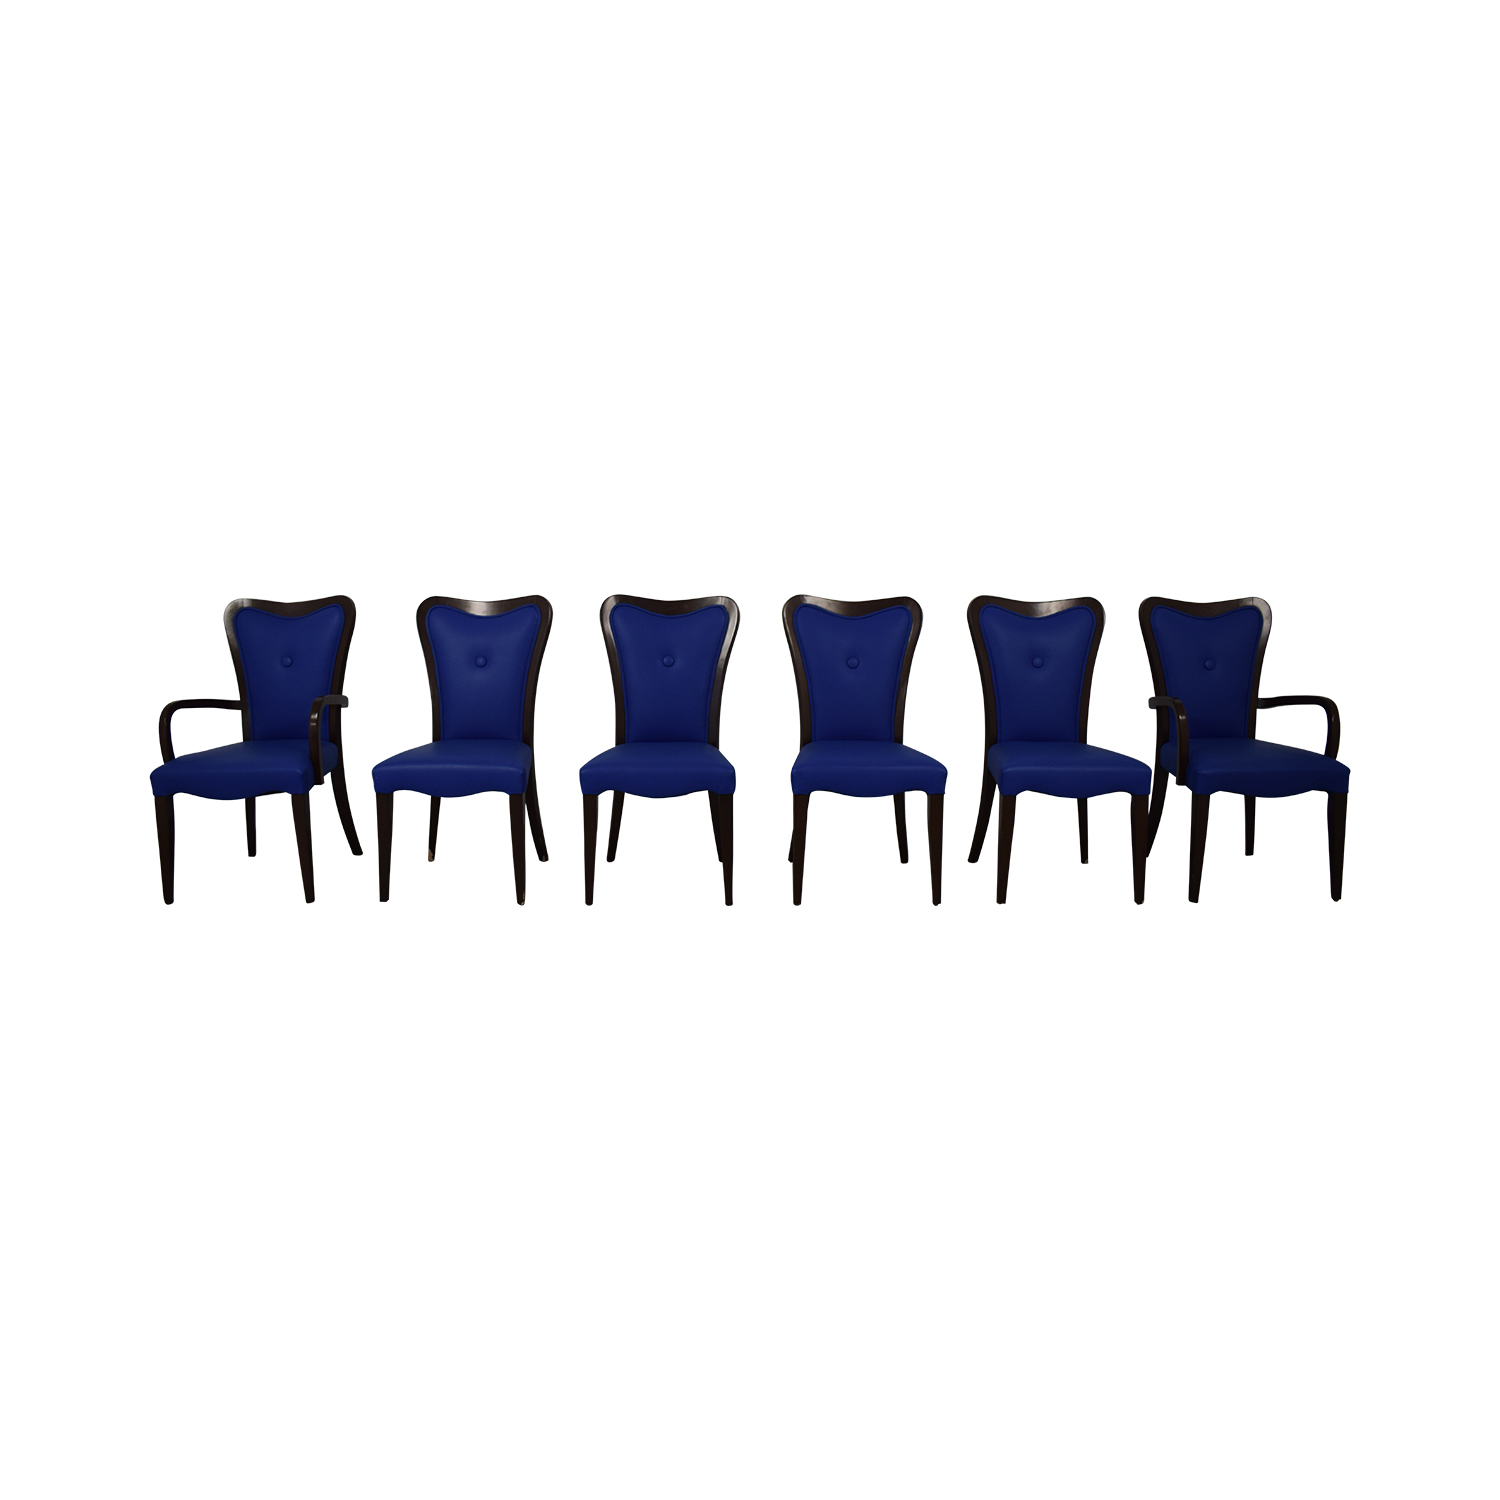 buy Geoffrey Bradfield Blue Dining Chairs Geoffrey Bradfield